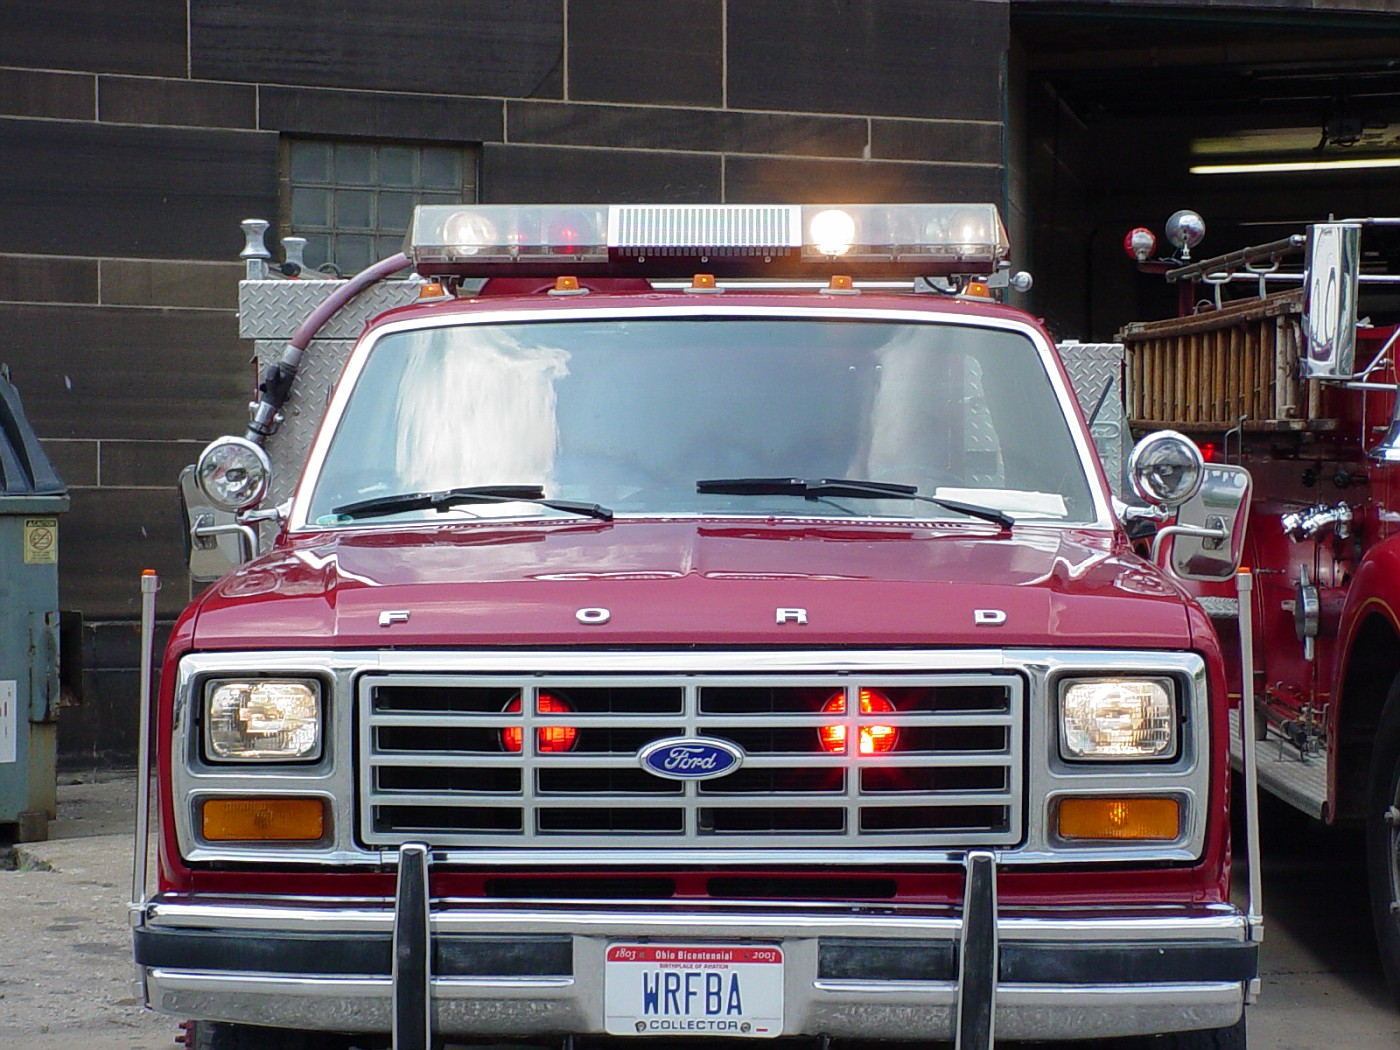 Cleveland Emergency Vehicle Show- 13 June 2004